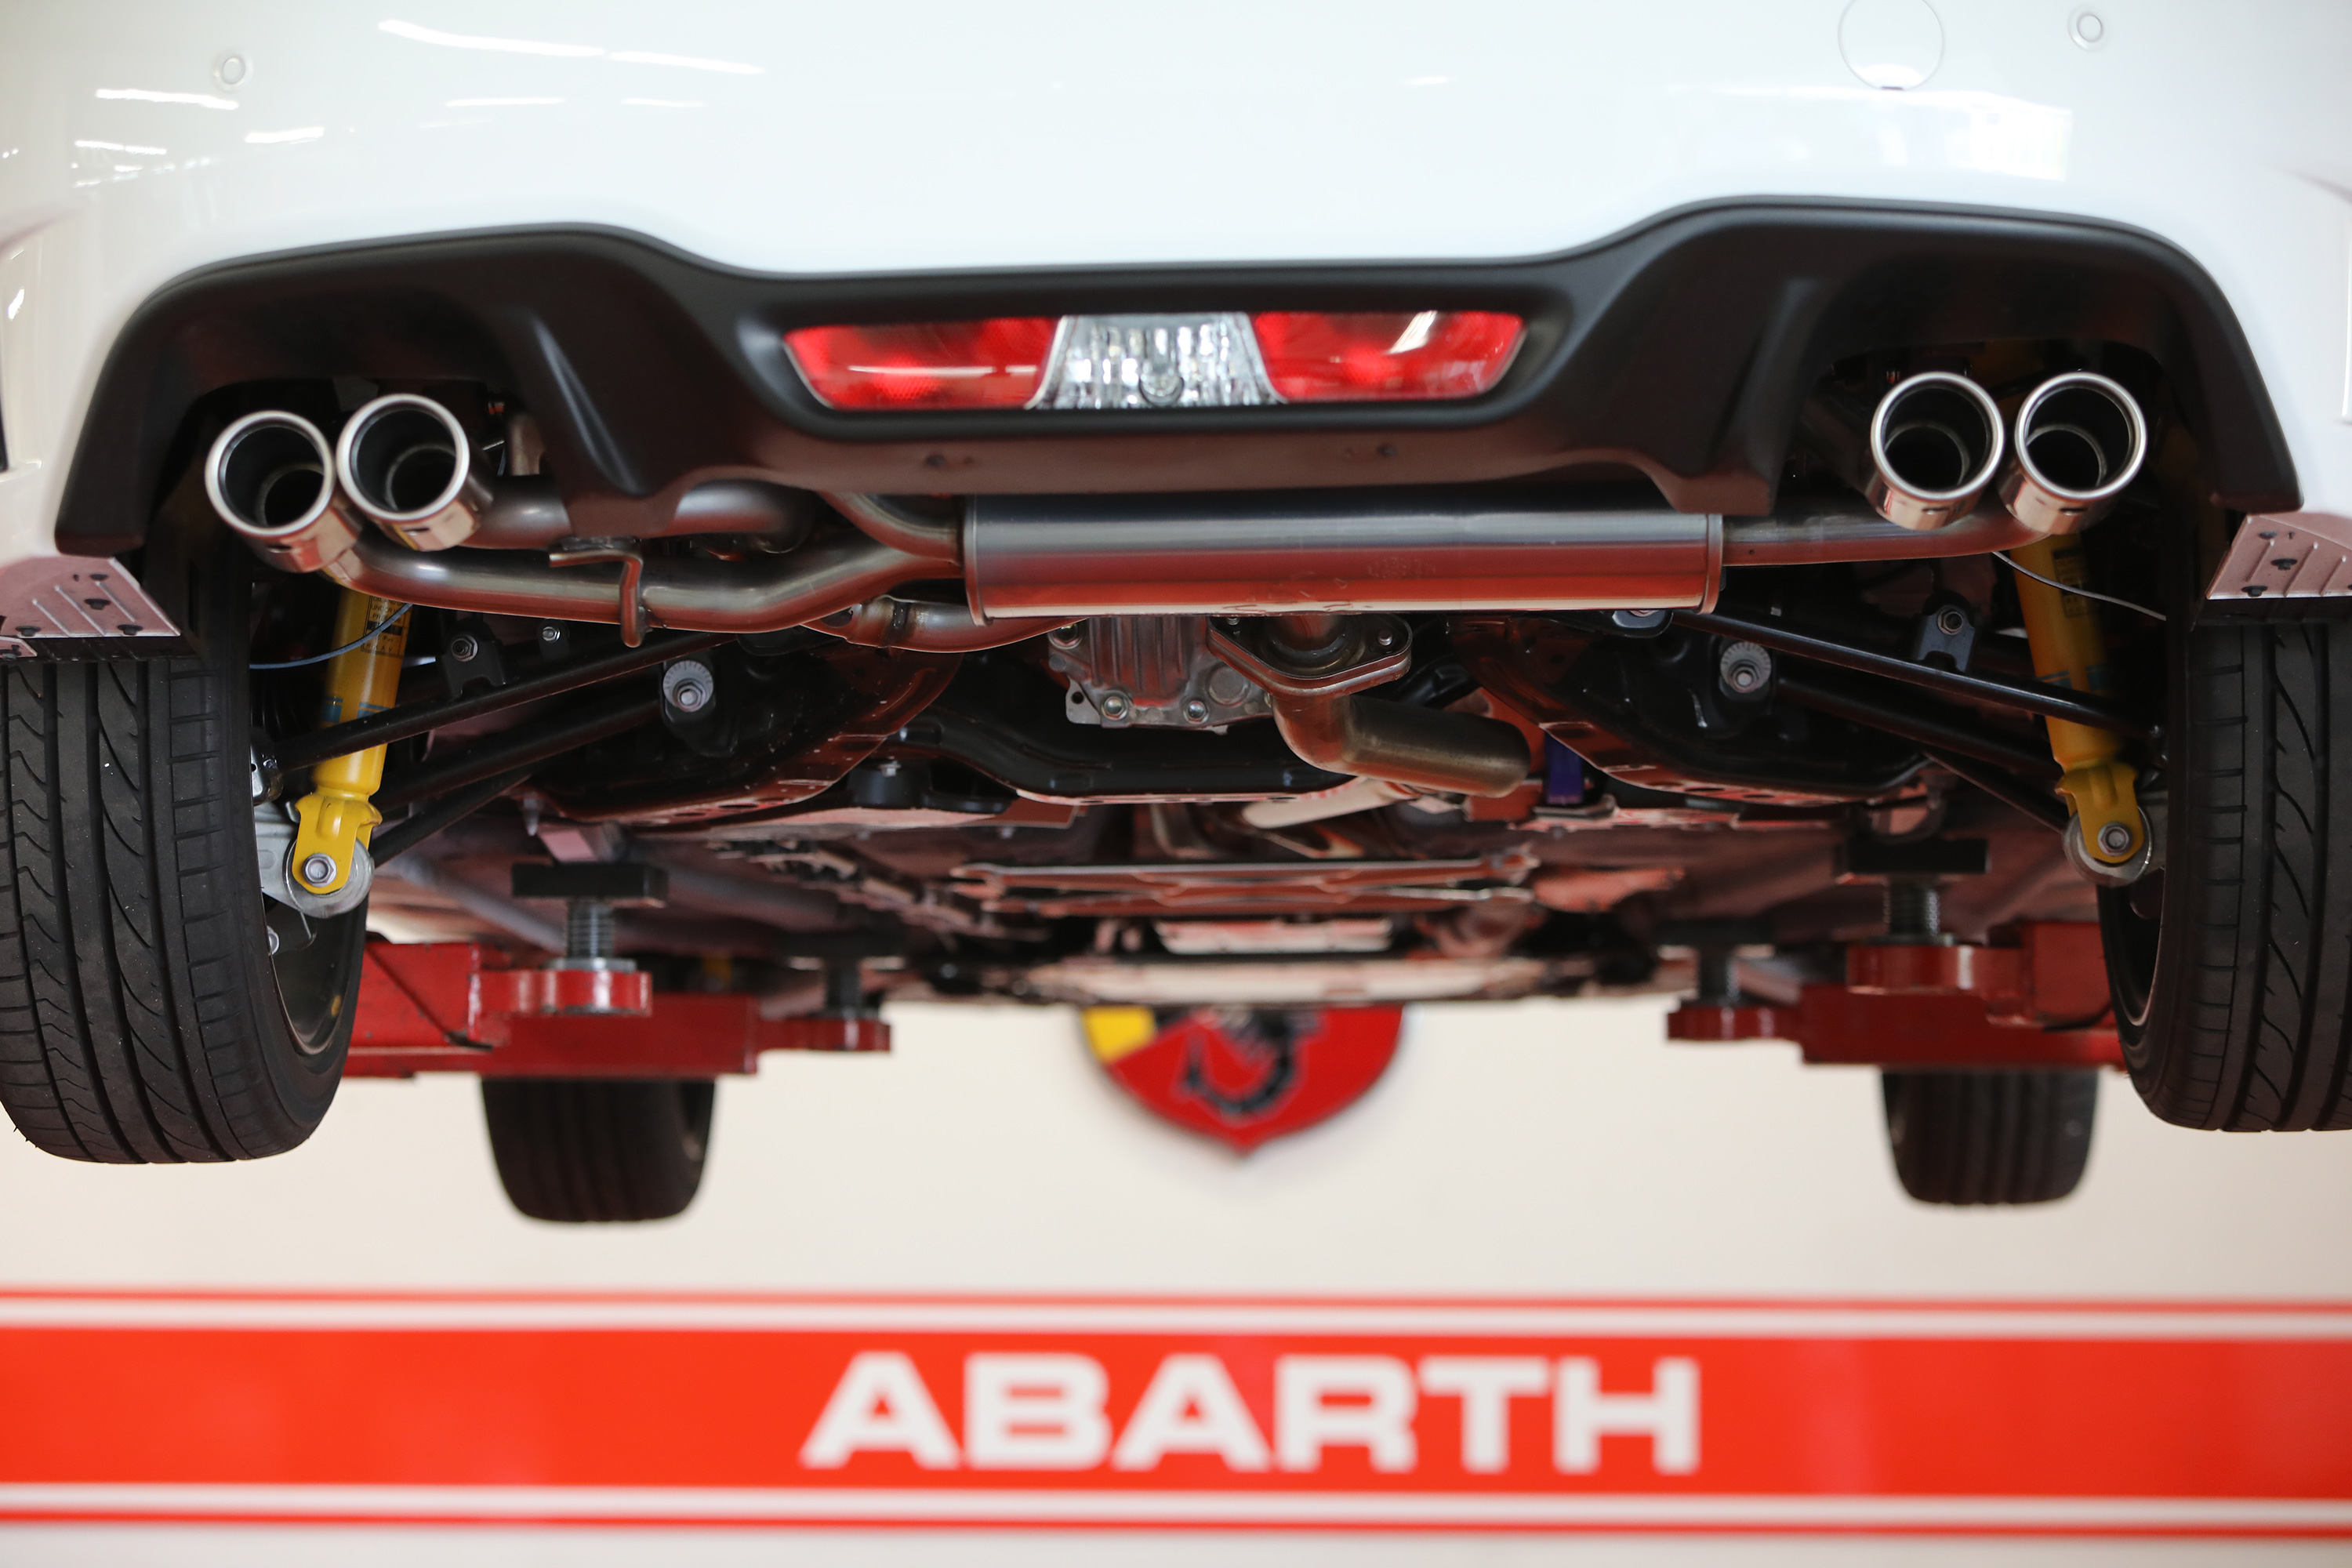 170519_Abarth_RecoMon_01